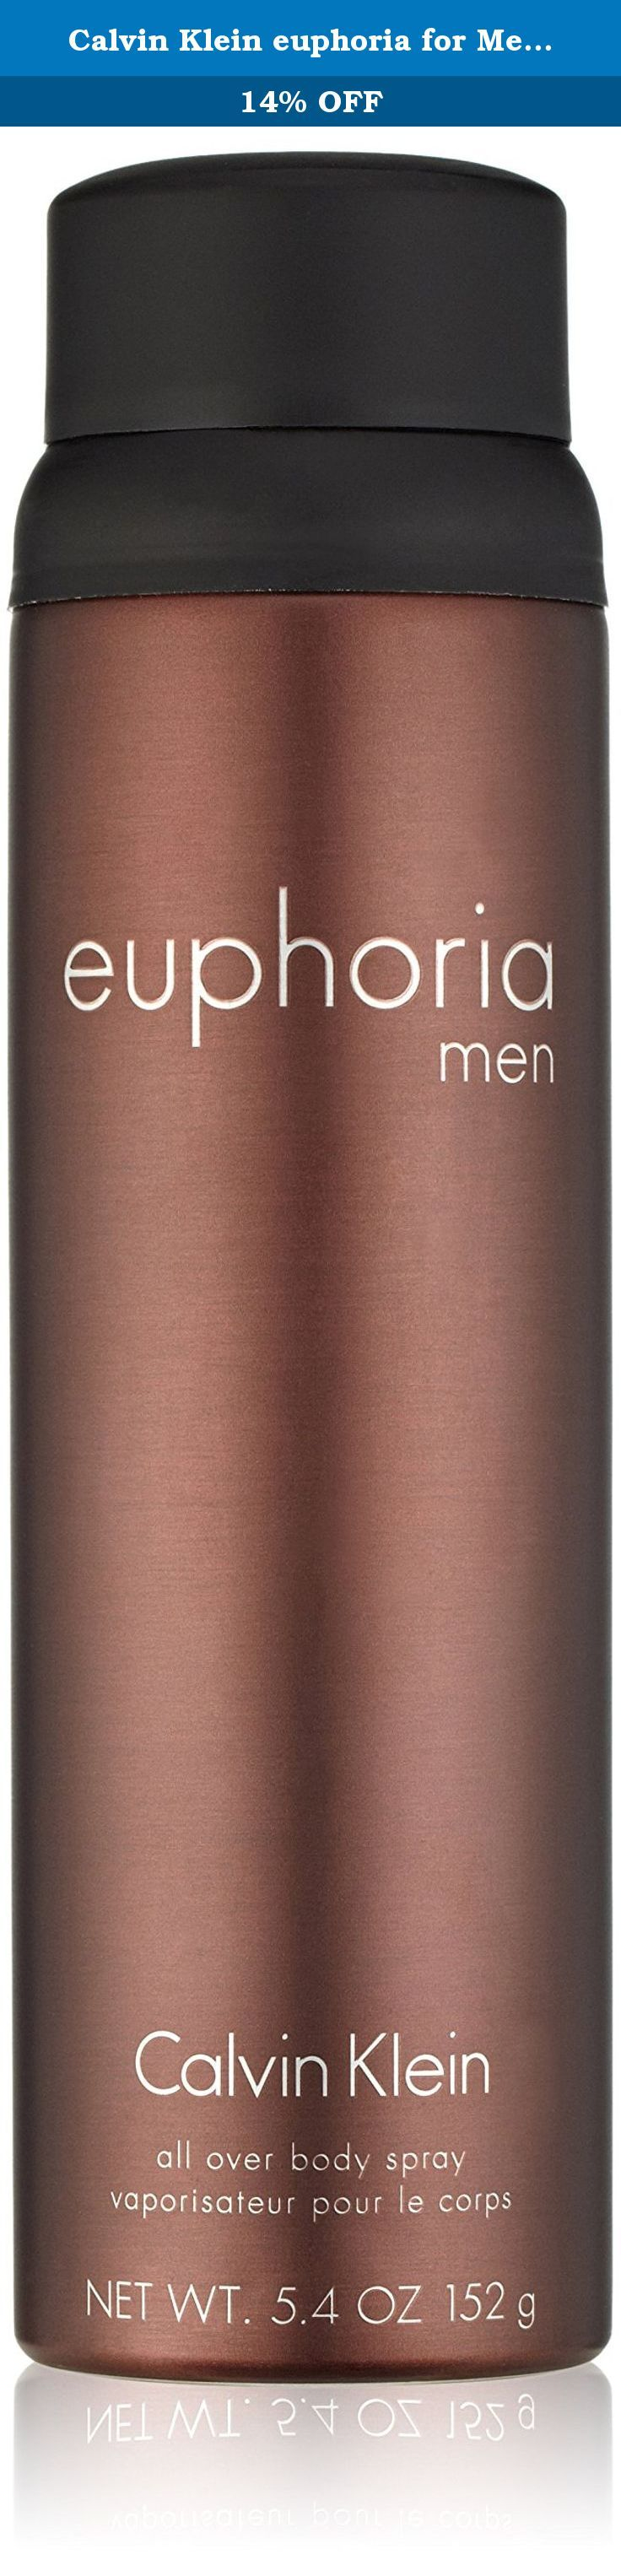 Calvin Klein euphoria for Men Body Spray, 5.4 oz. Addictive. Masculine. Sexy. The lighter version of your favourite scent, euphoria men body spray is the perfect way to refresh and re-energize yourself throughout the day.